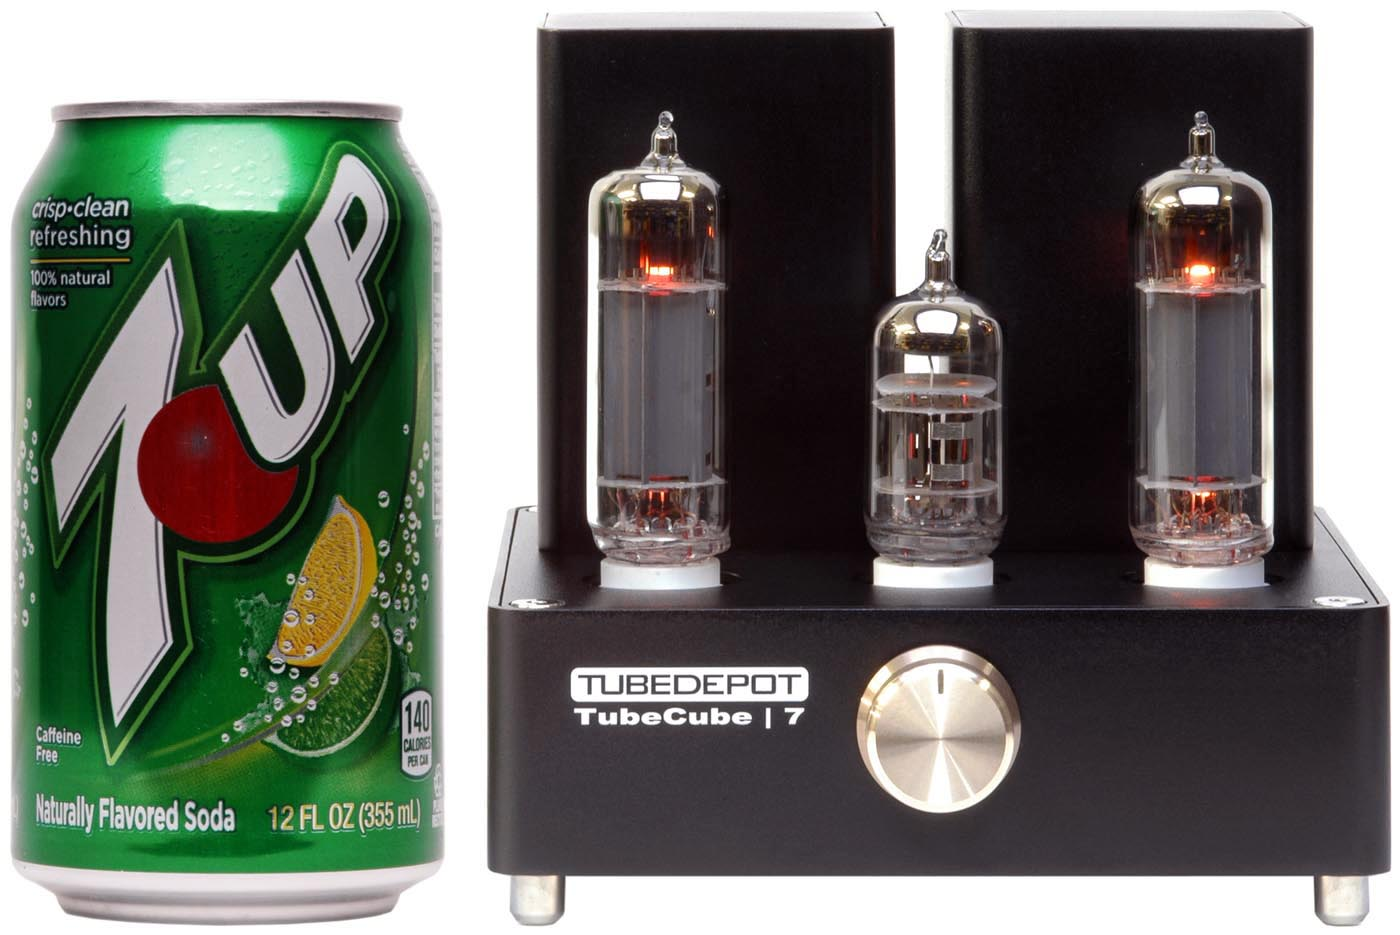 Tubecube 7 Stereo Vacuum Tube Amplifier Complete Amp Kit Has Everything You Need To Hook Up Your Can Connect